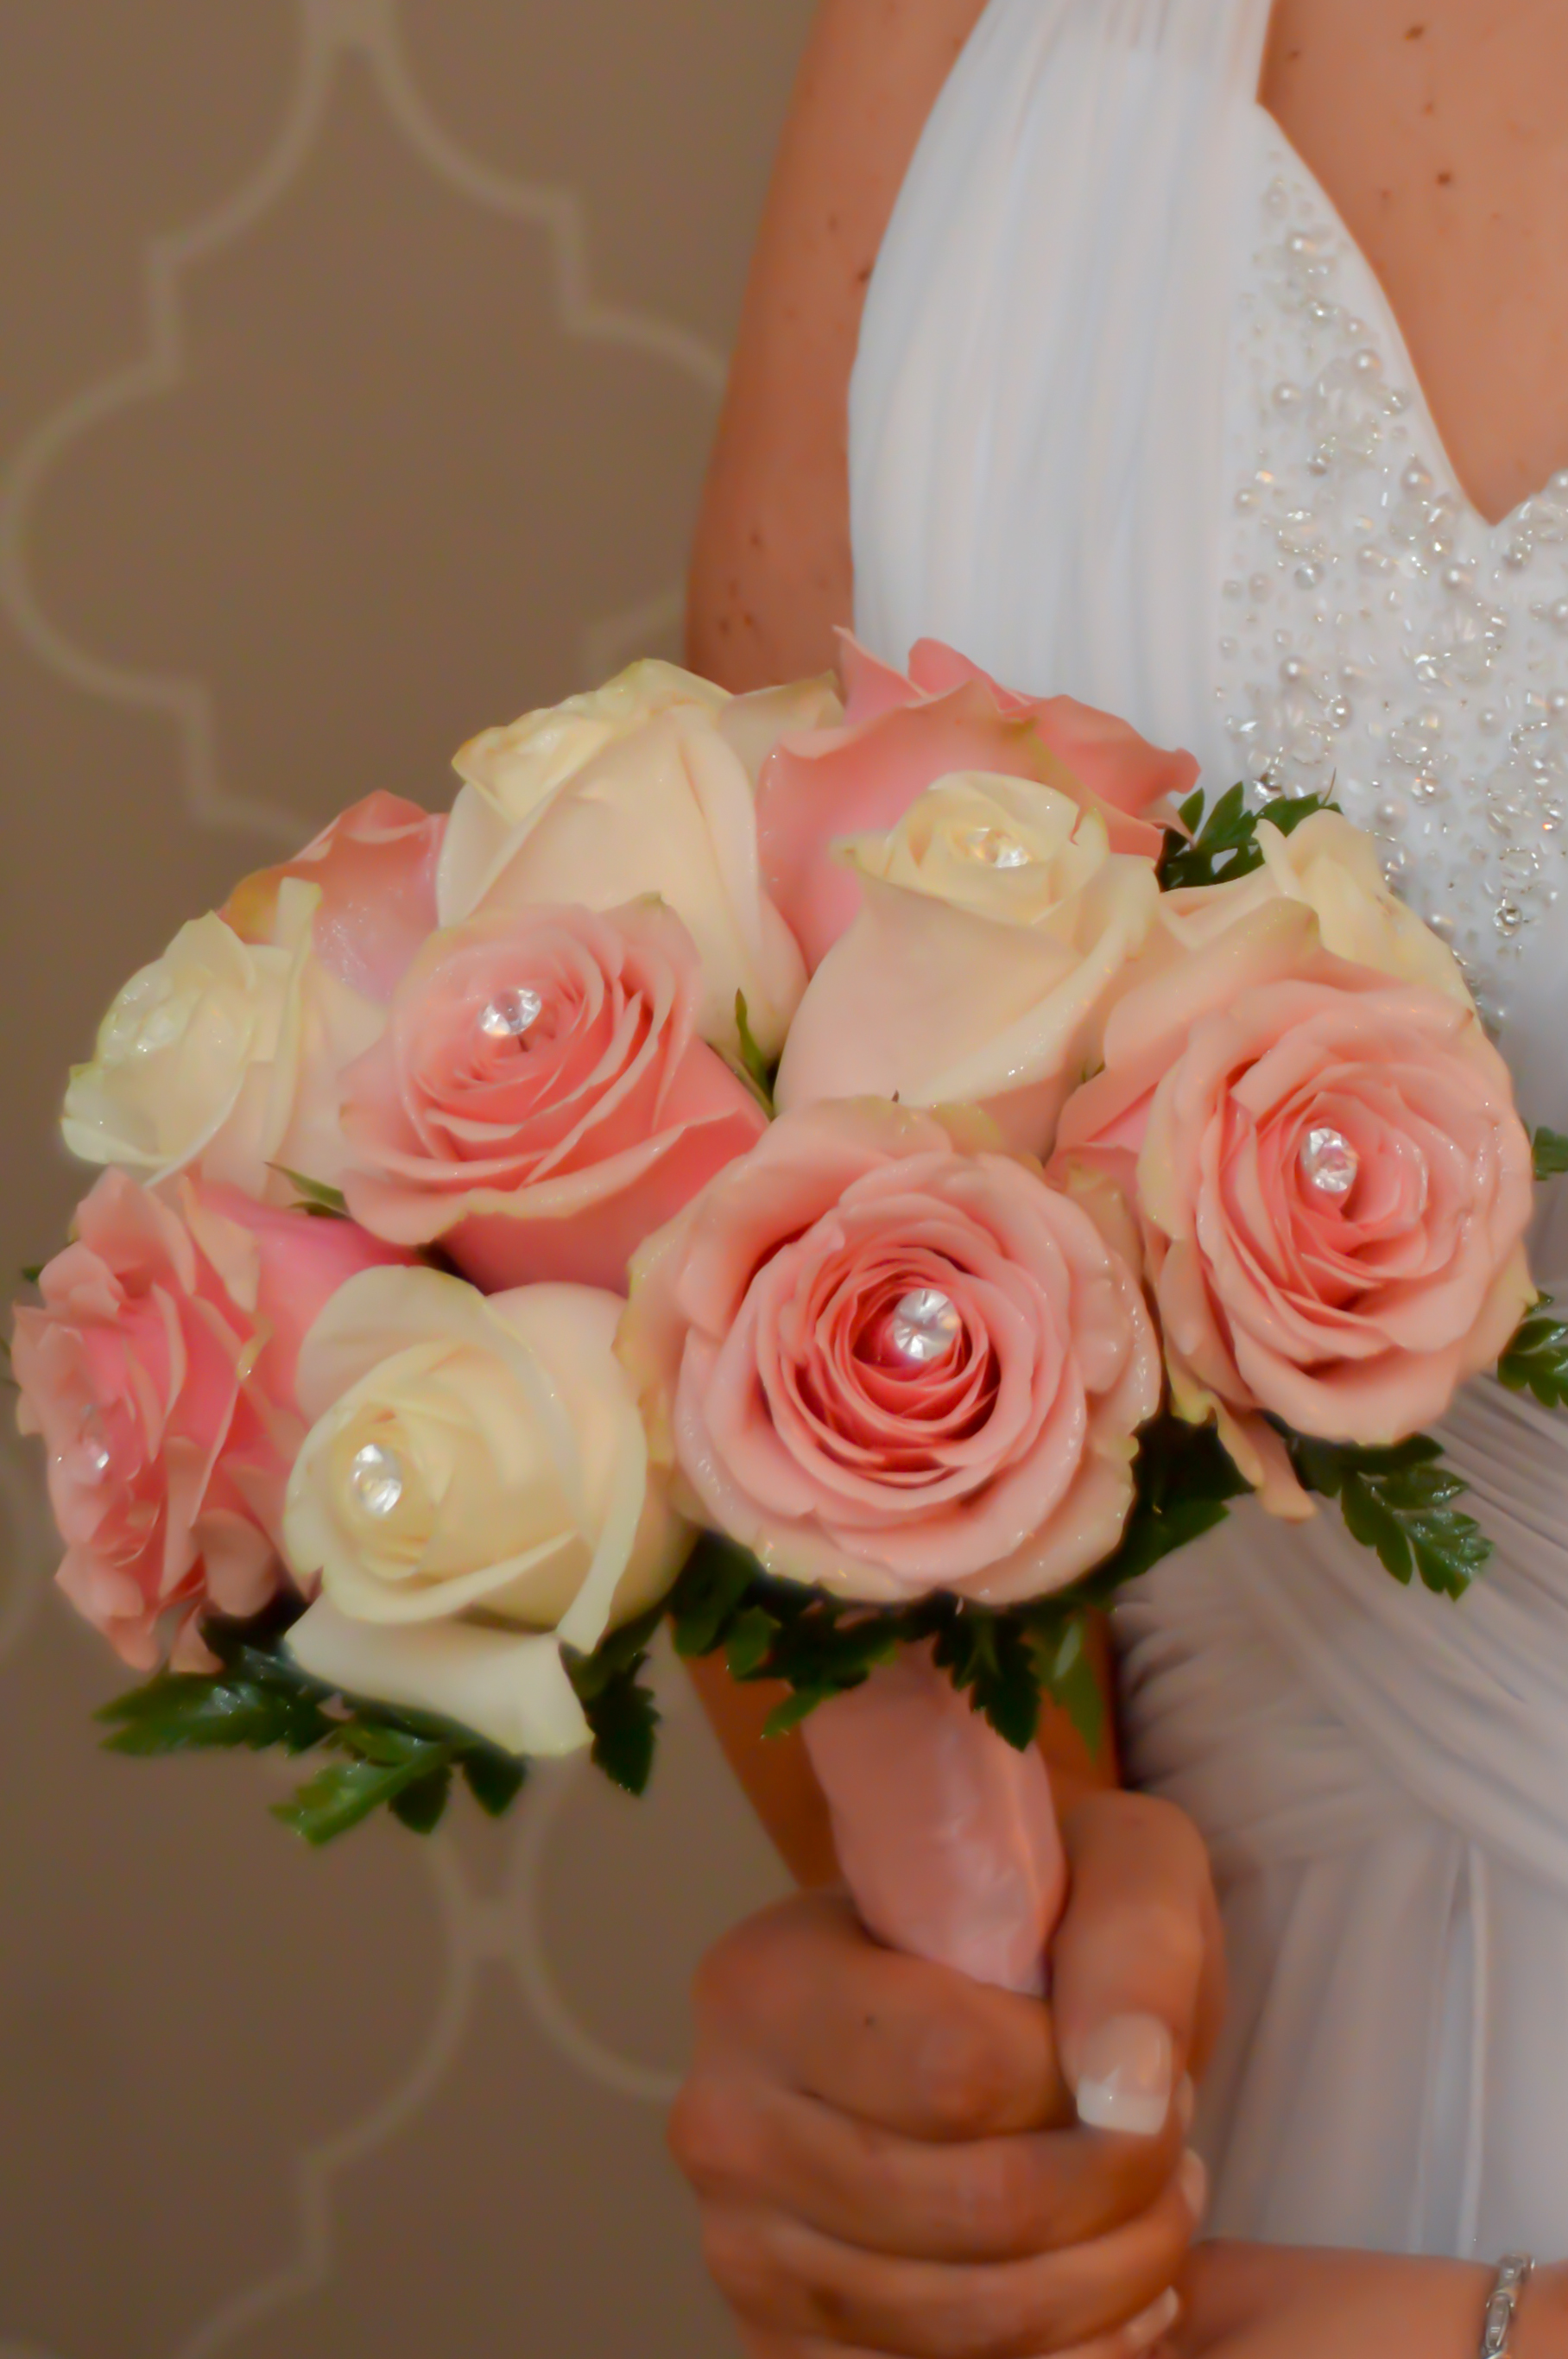 Wedding Flowers & Accessories: Mon Bel Ami Wedding Chapel